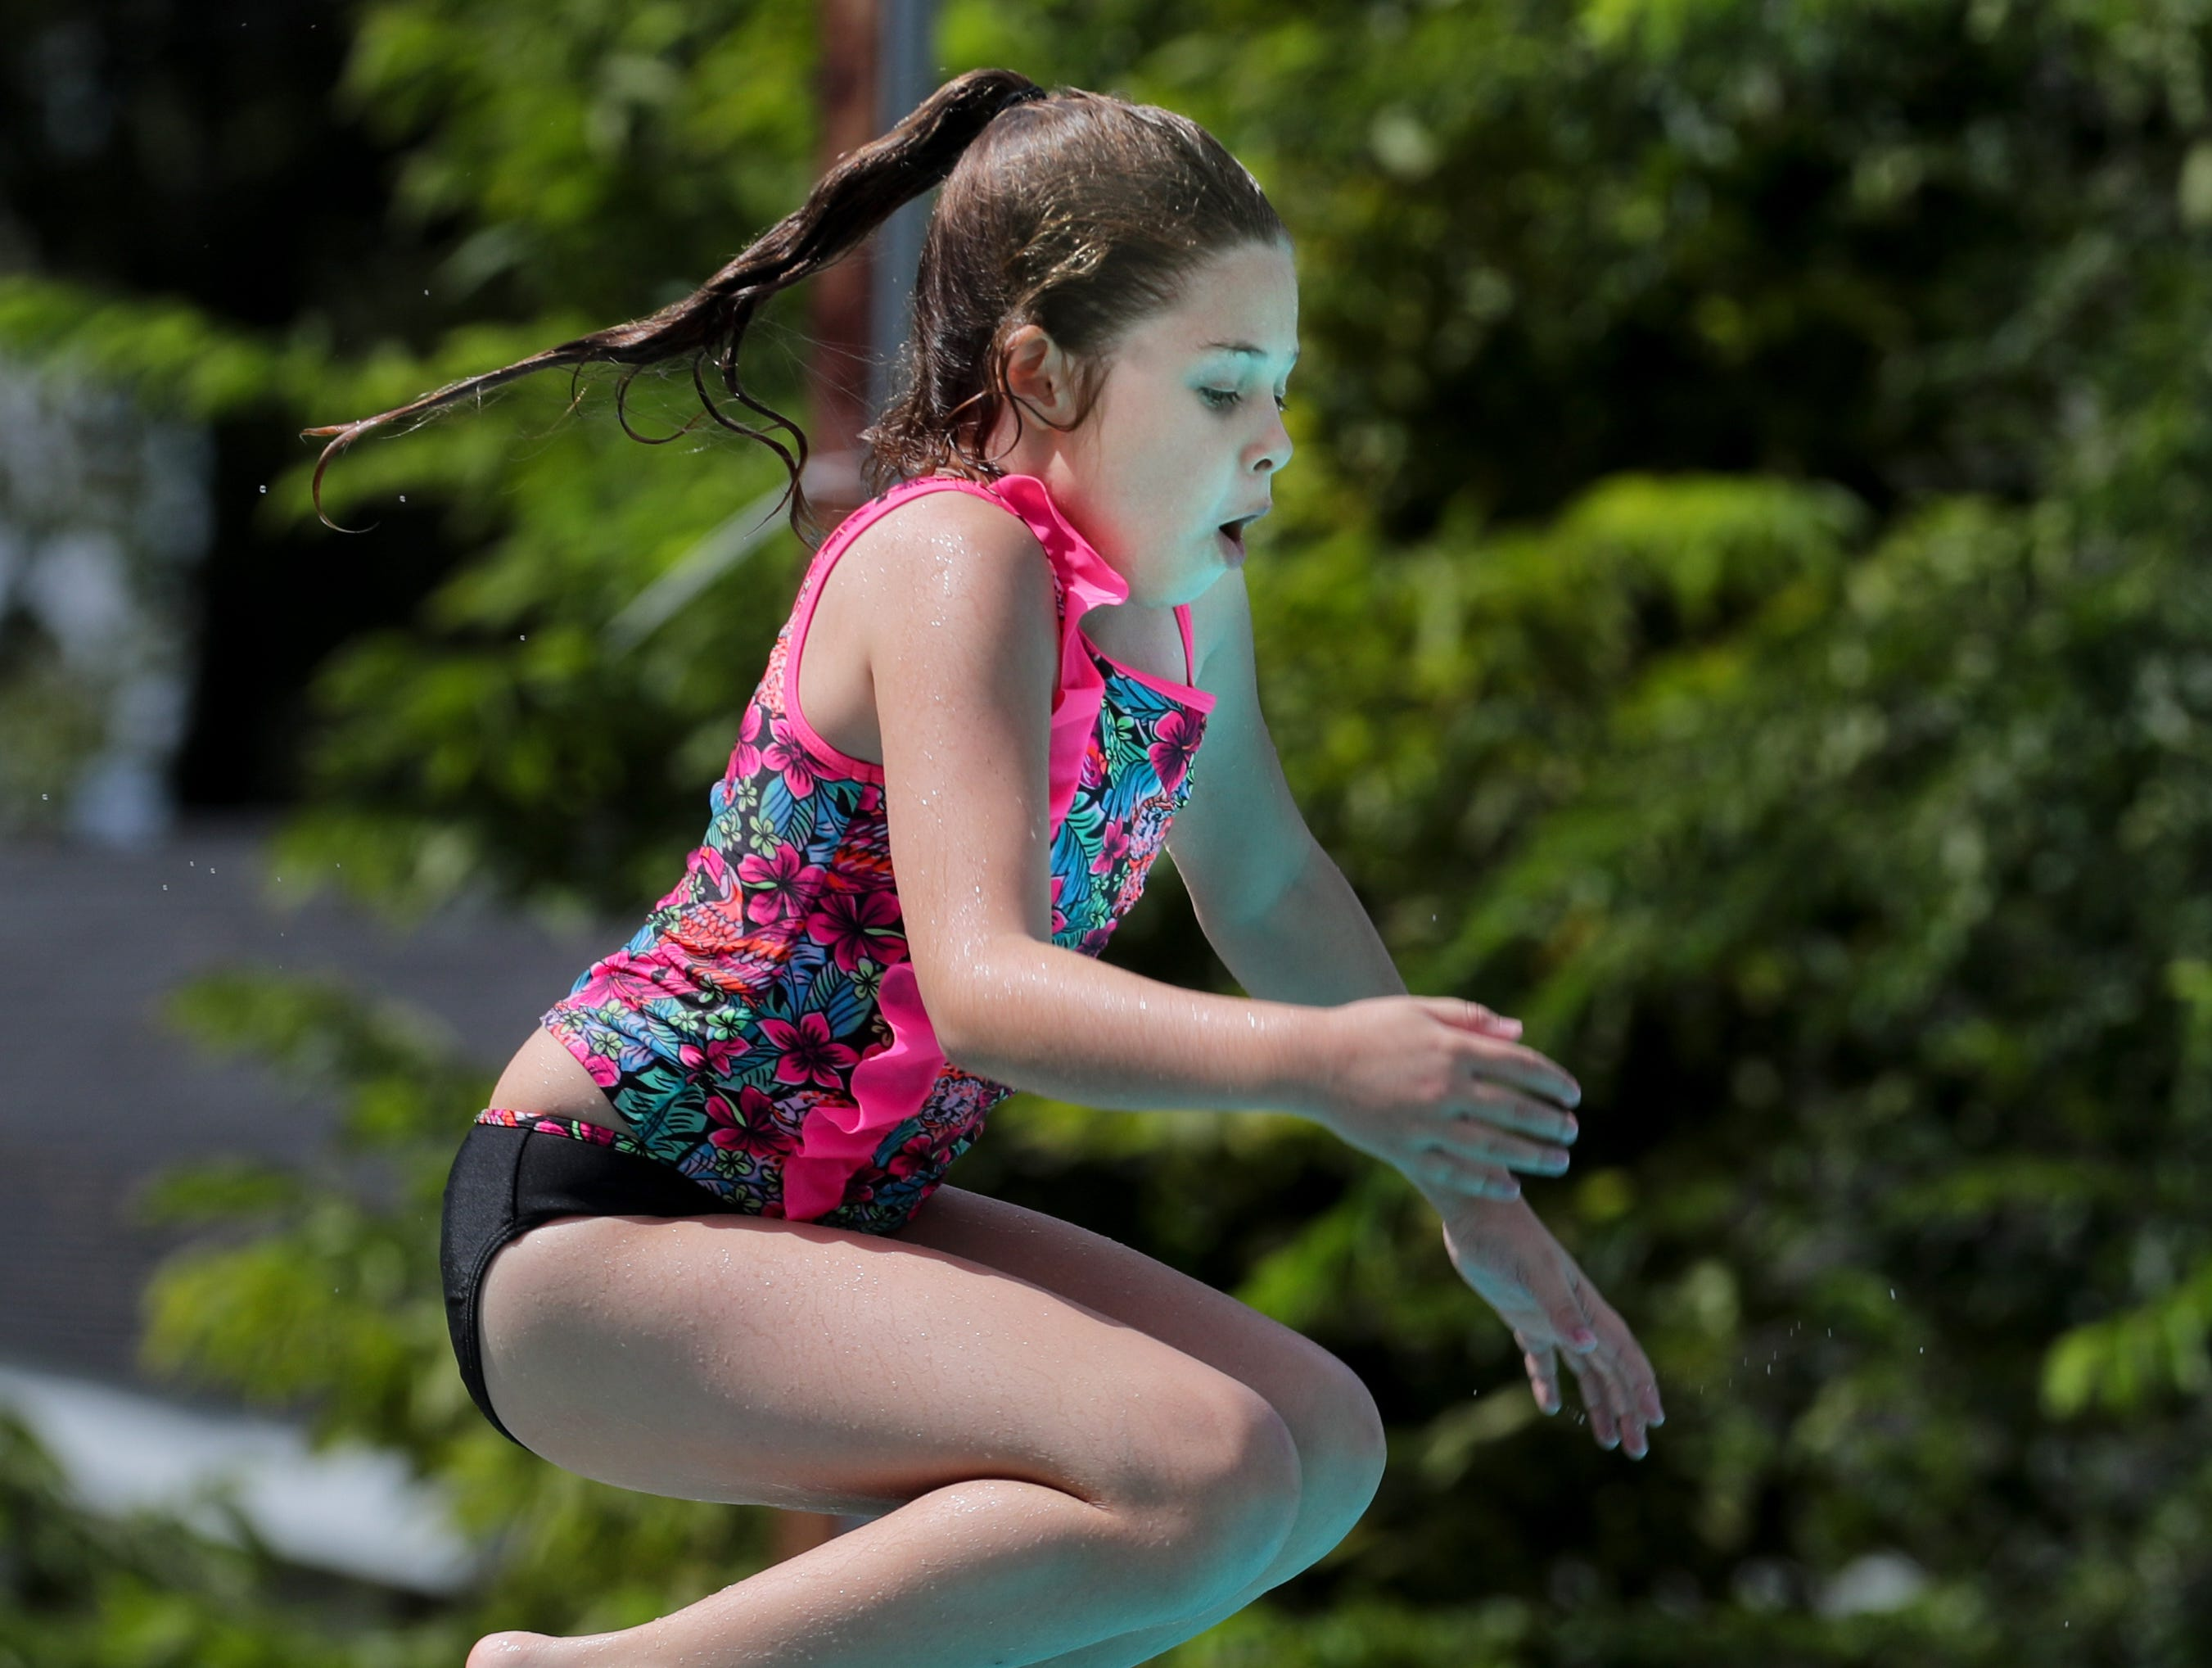 Eden Razor jumps off the diving board at the pool party during the Kentucky Kick Down Festival.  